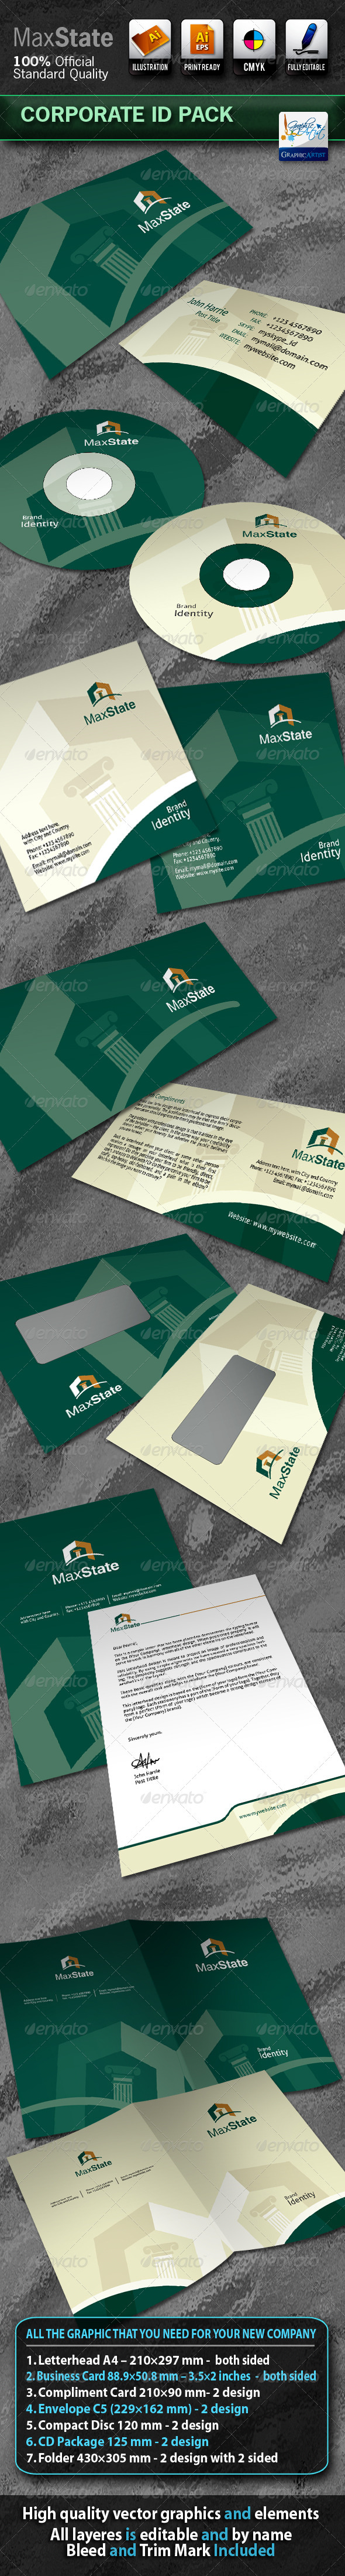 Graphic River MaxState Business Corporate ID Pack With Logo Print Templates -  Stationery 720434